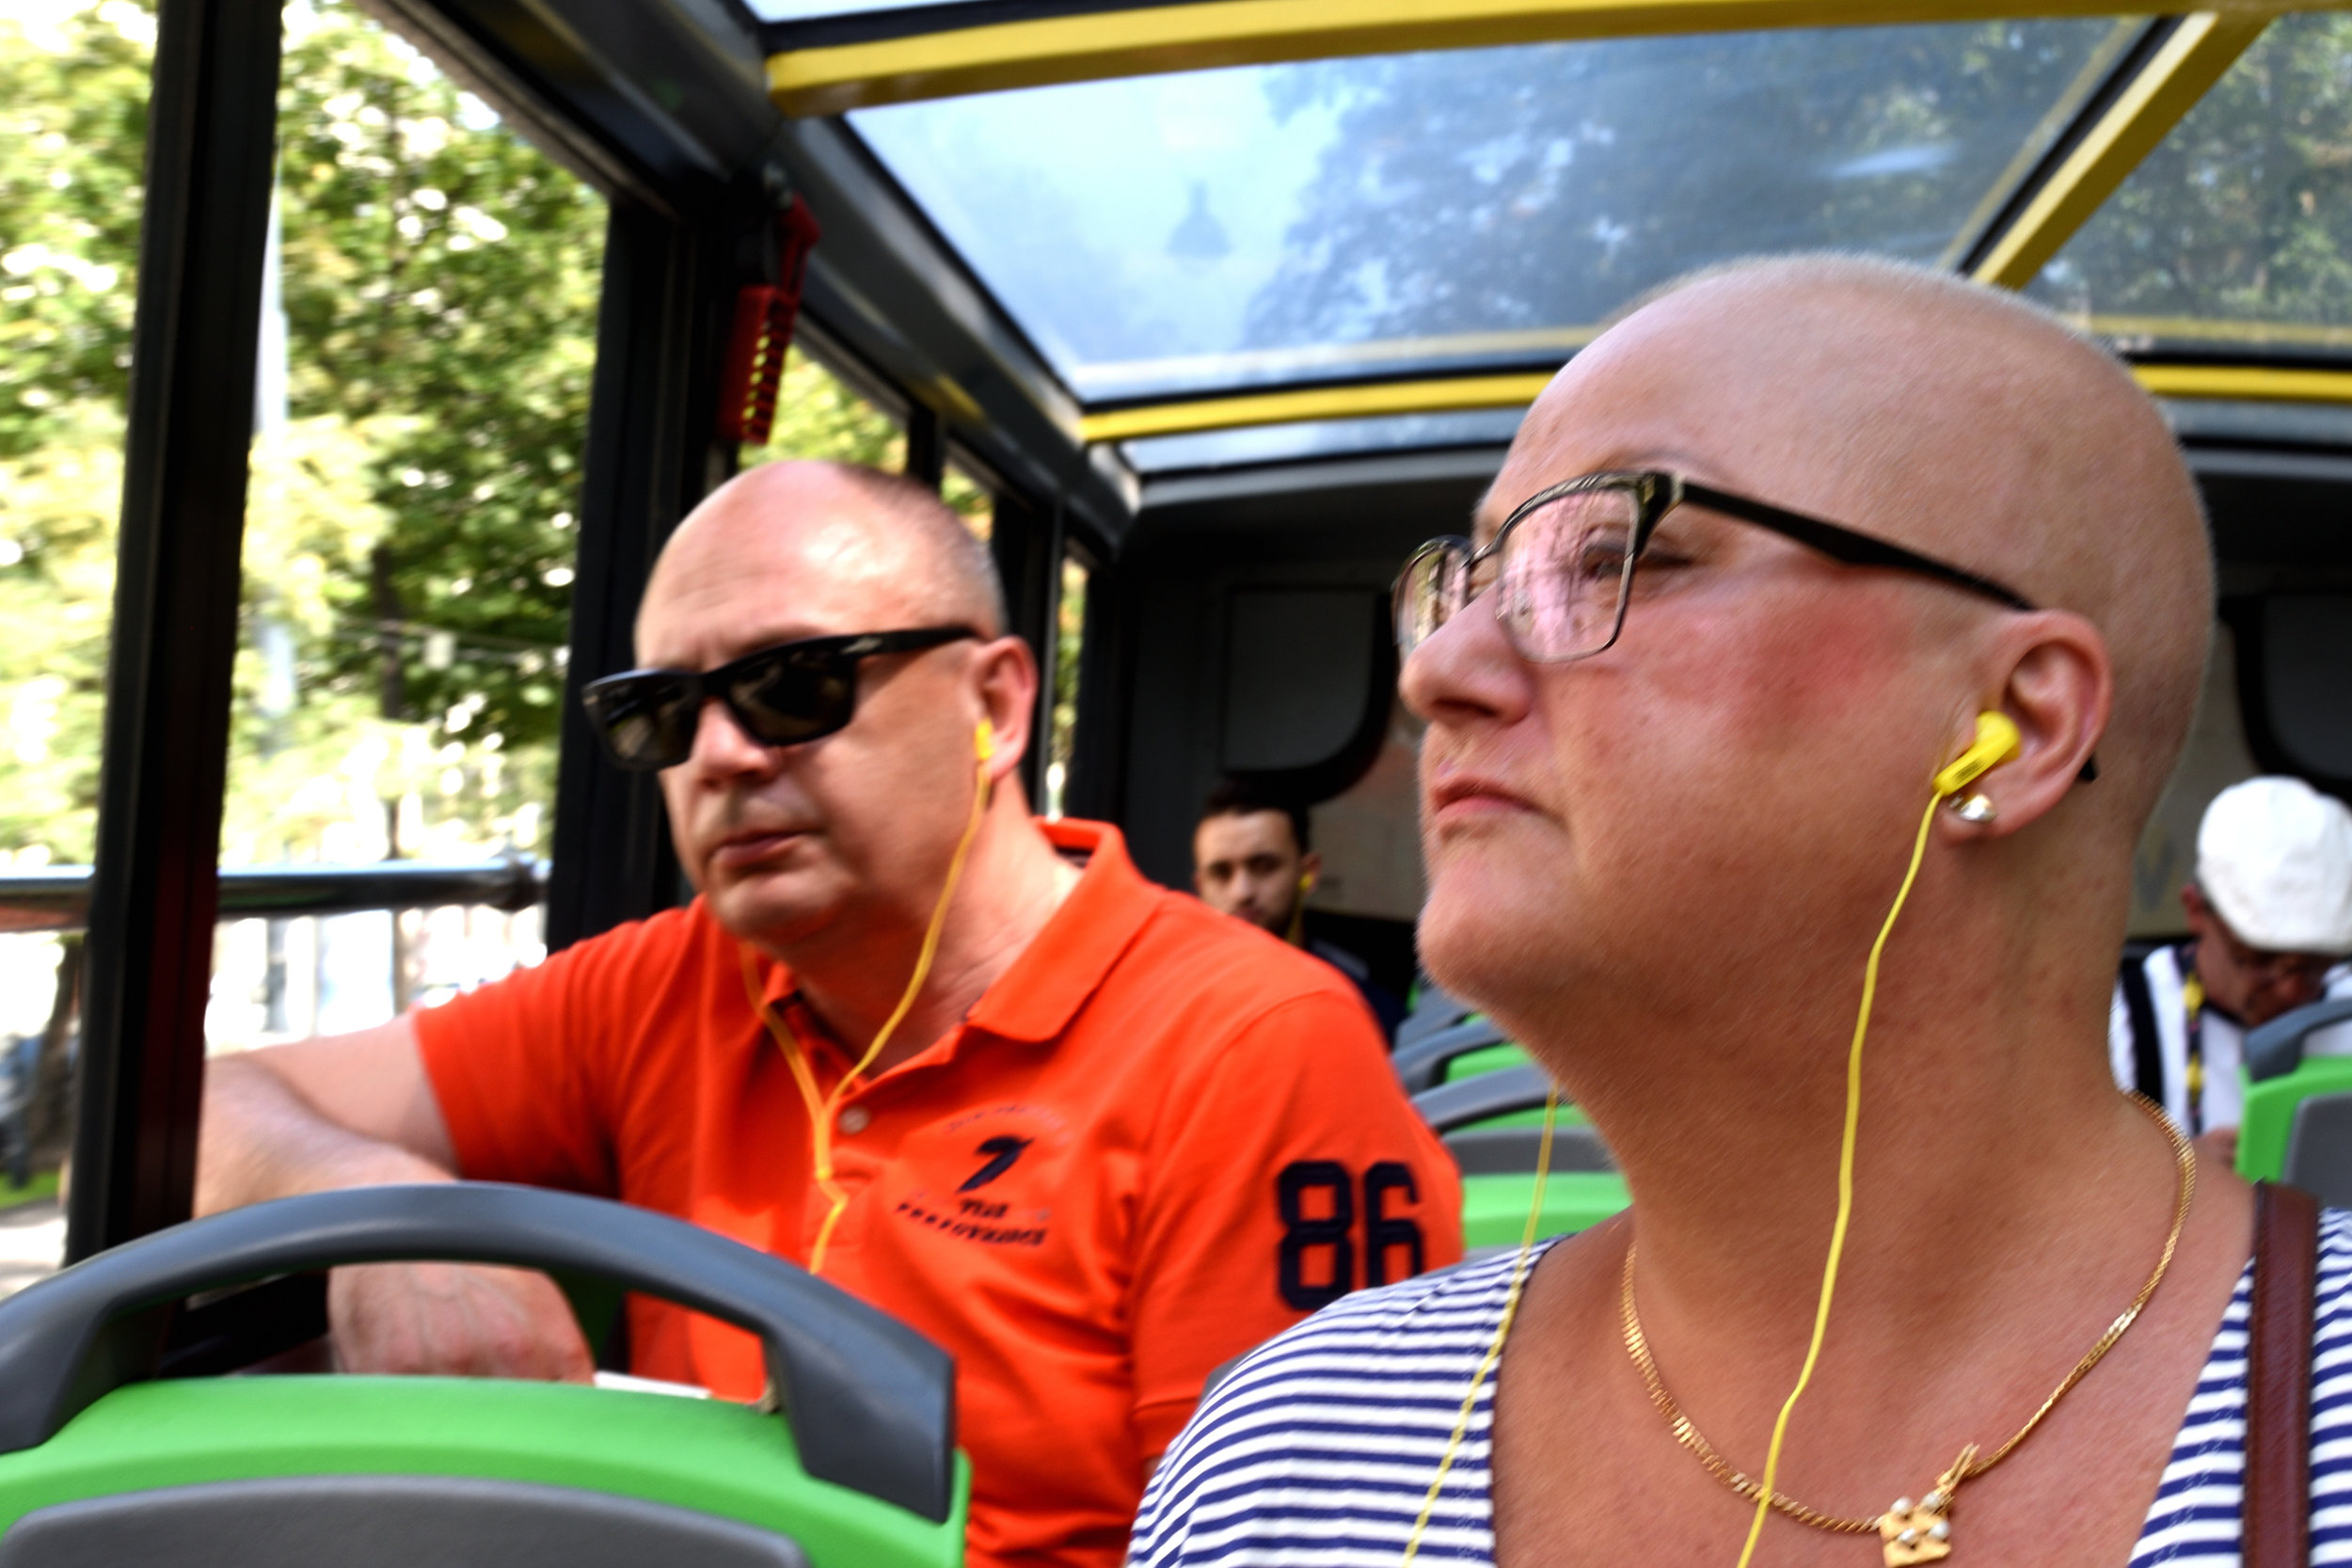 Stefan & Ullis, Hop on Hop off bus tour, Vienna July 2017